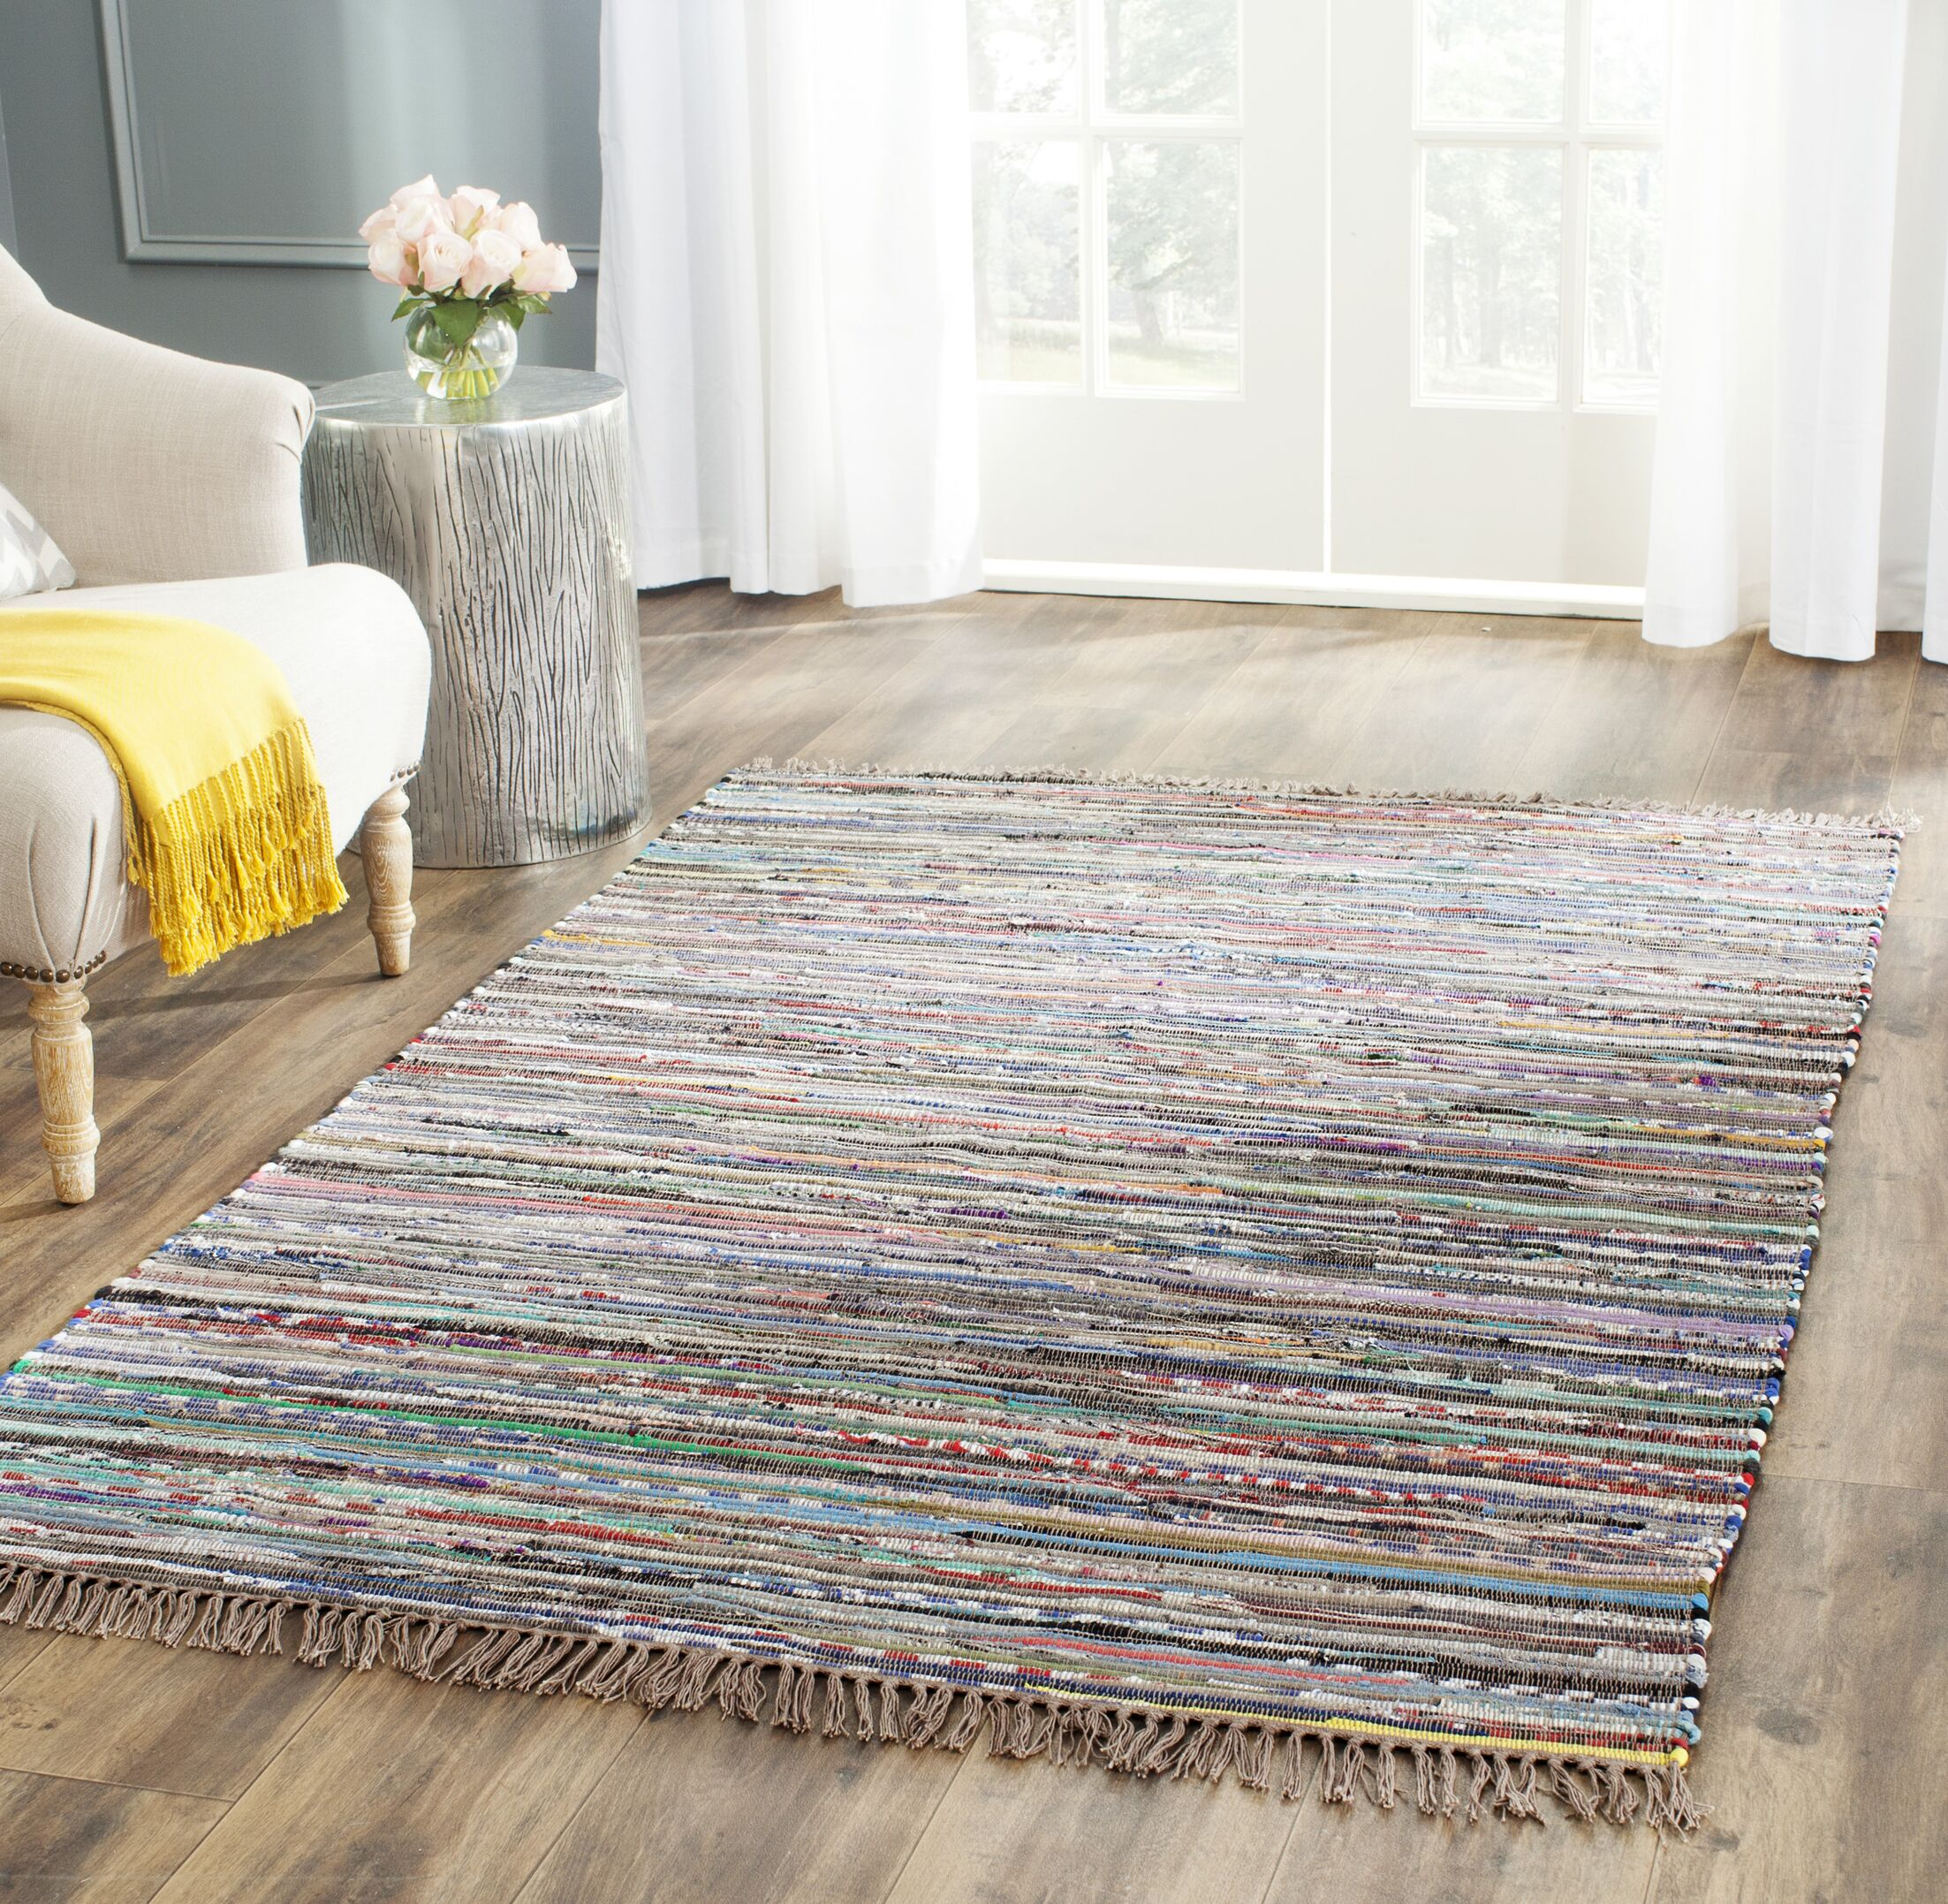 Hatteras Contemporary Hand-Woven Grey/Red/Green Area Rug Rug Size: Rectangle 6' x 9'